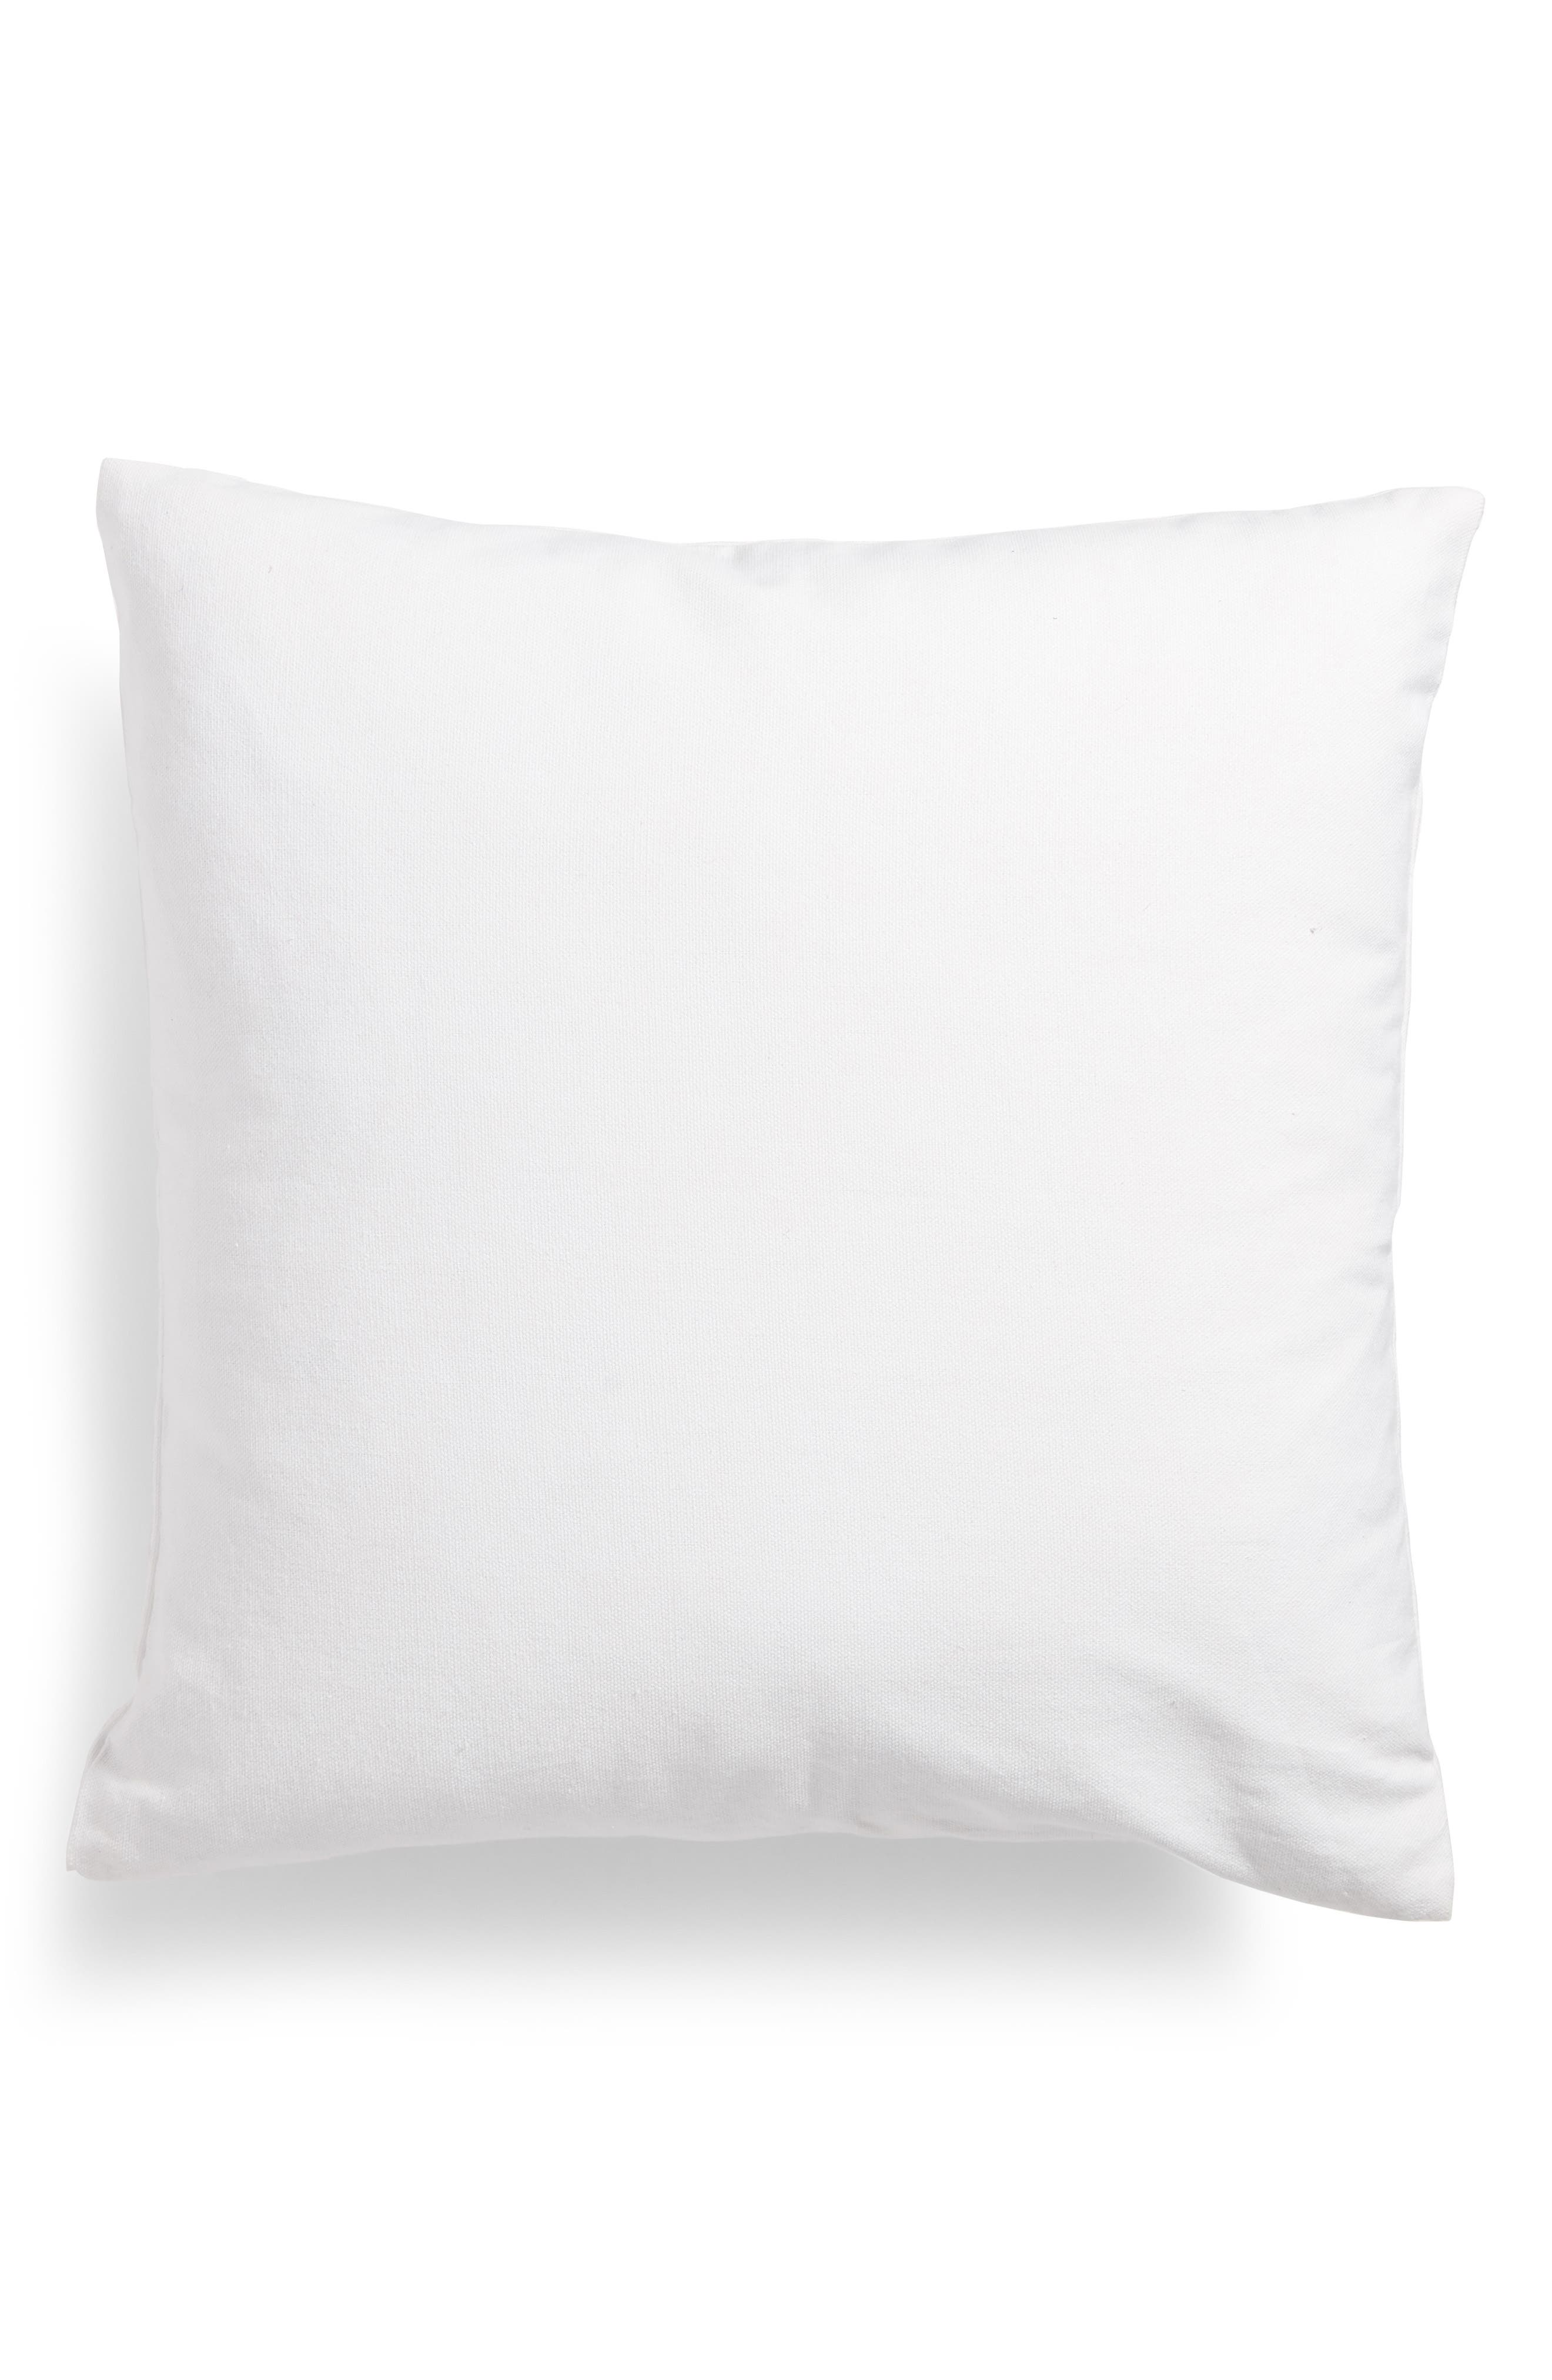 Bree Embroidered Accent Pillow,                             Alternate thumbnail 2, color,                             White